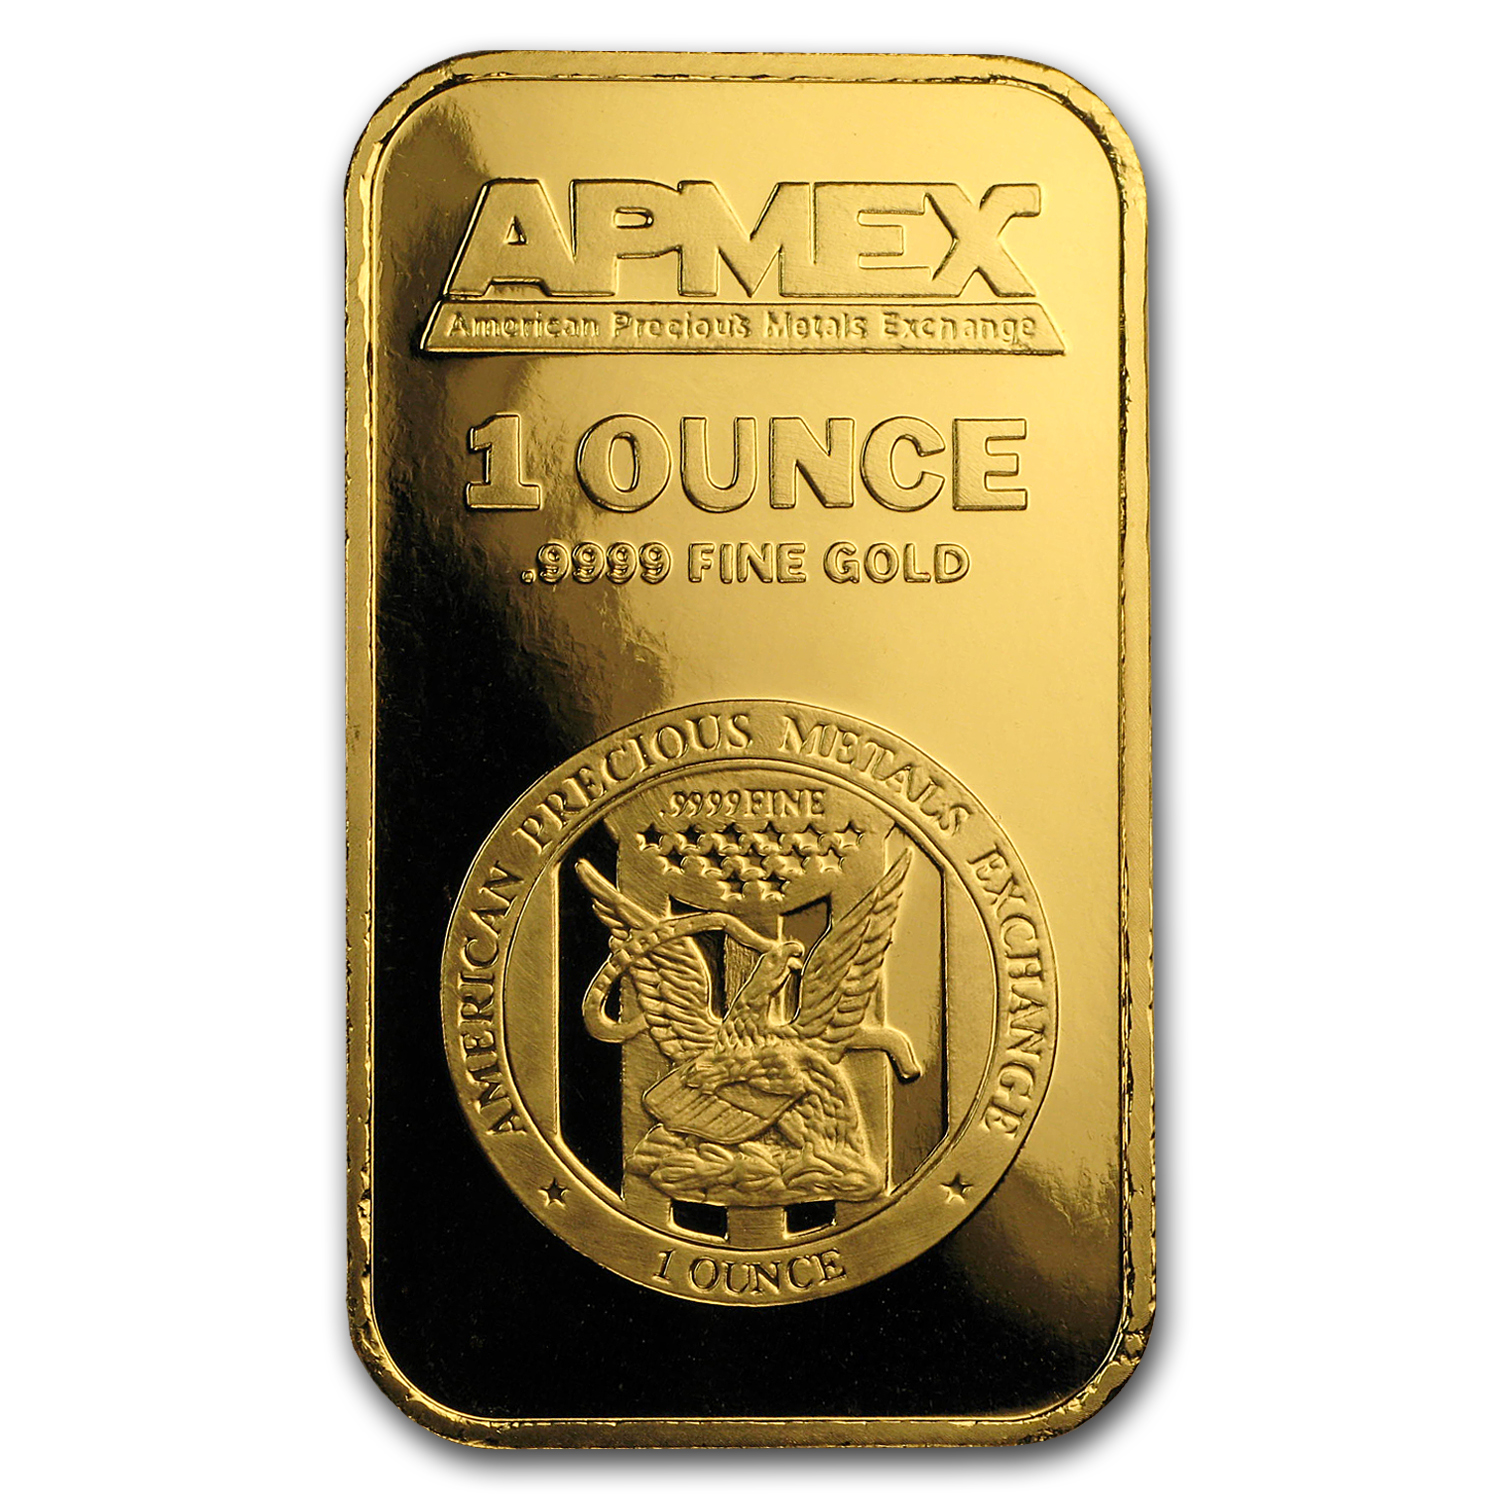 1 oz Gold Bar - APMEX